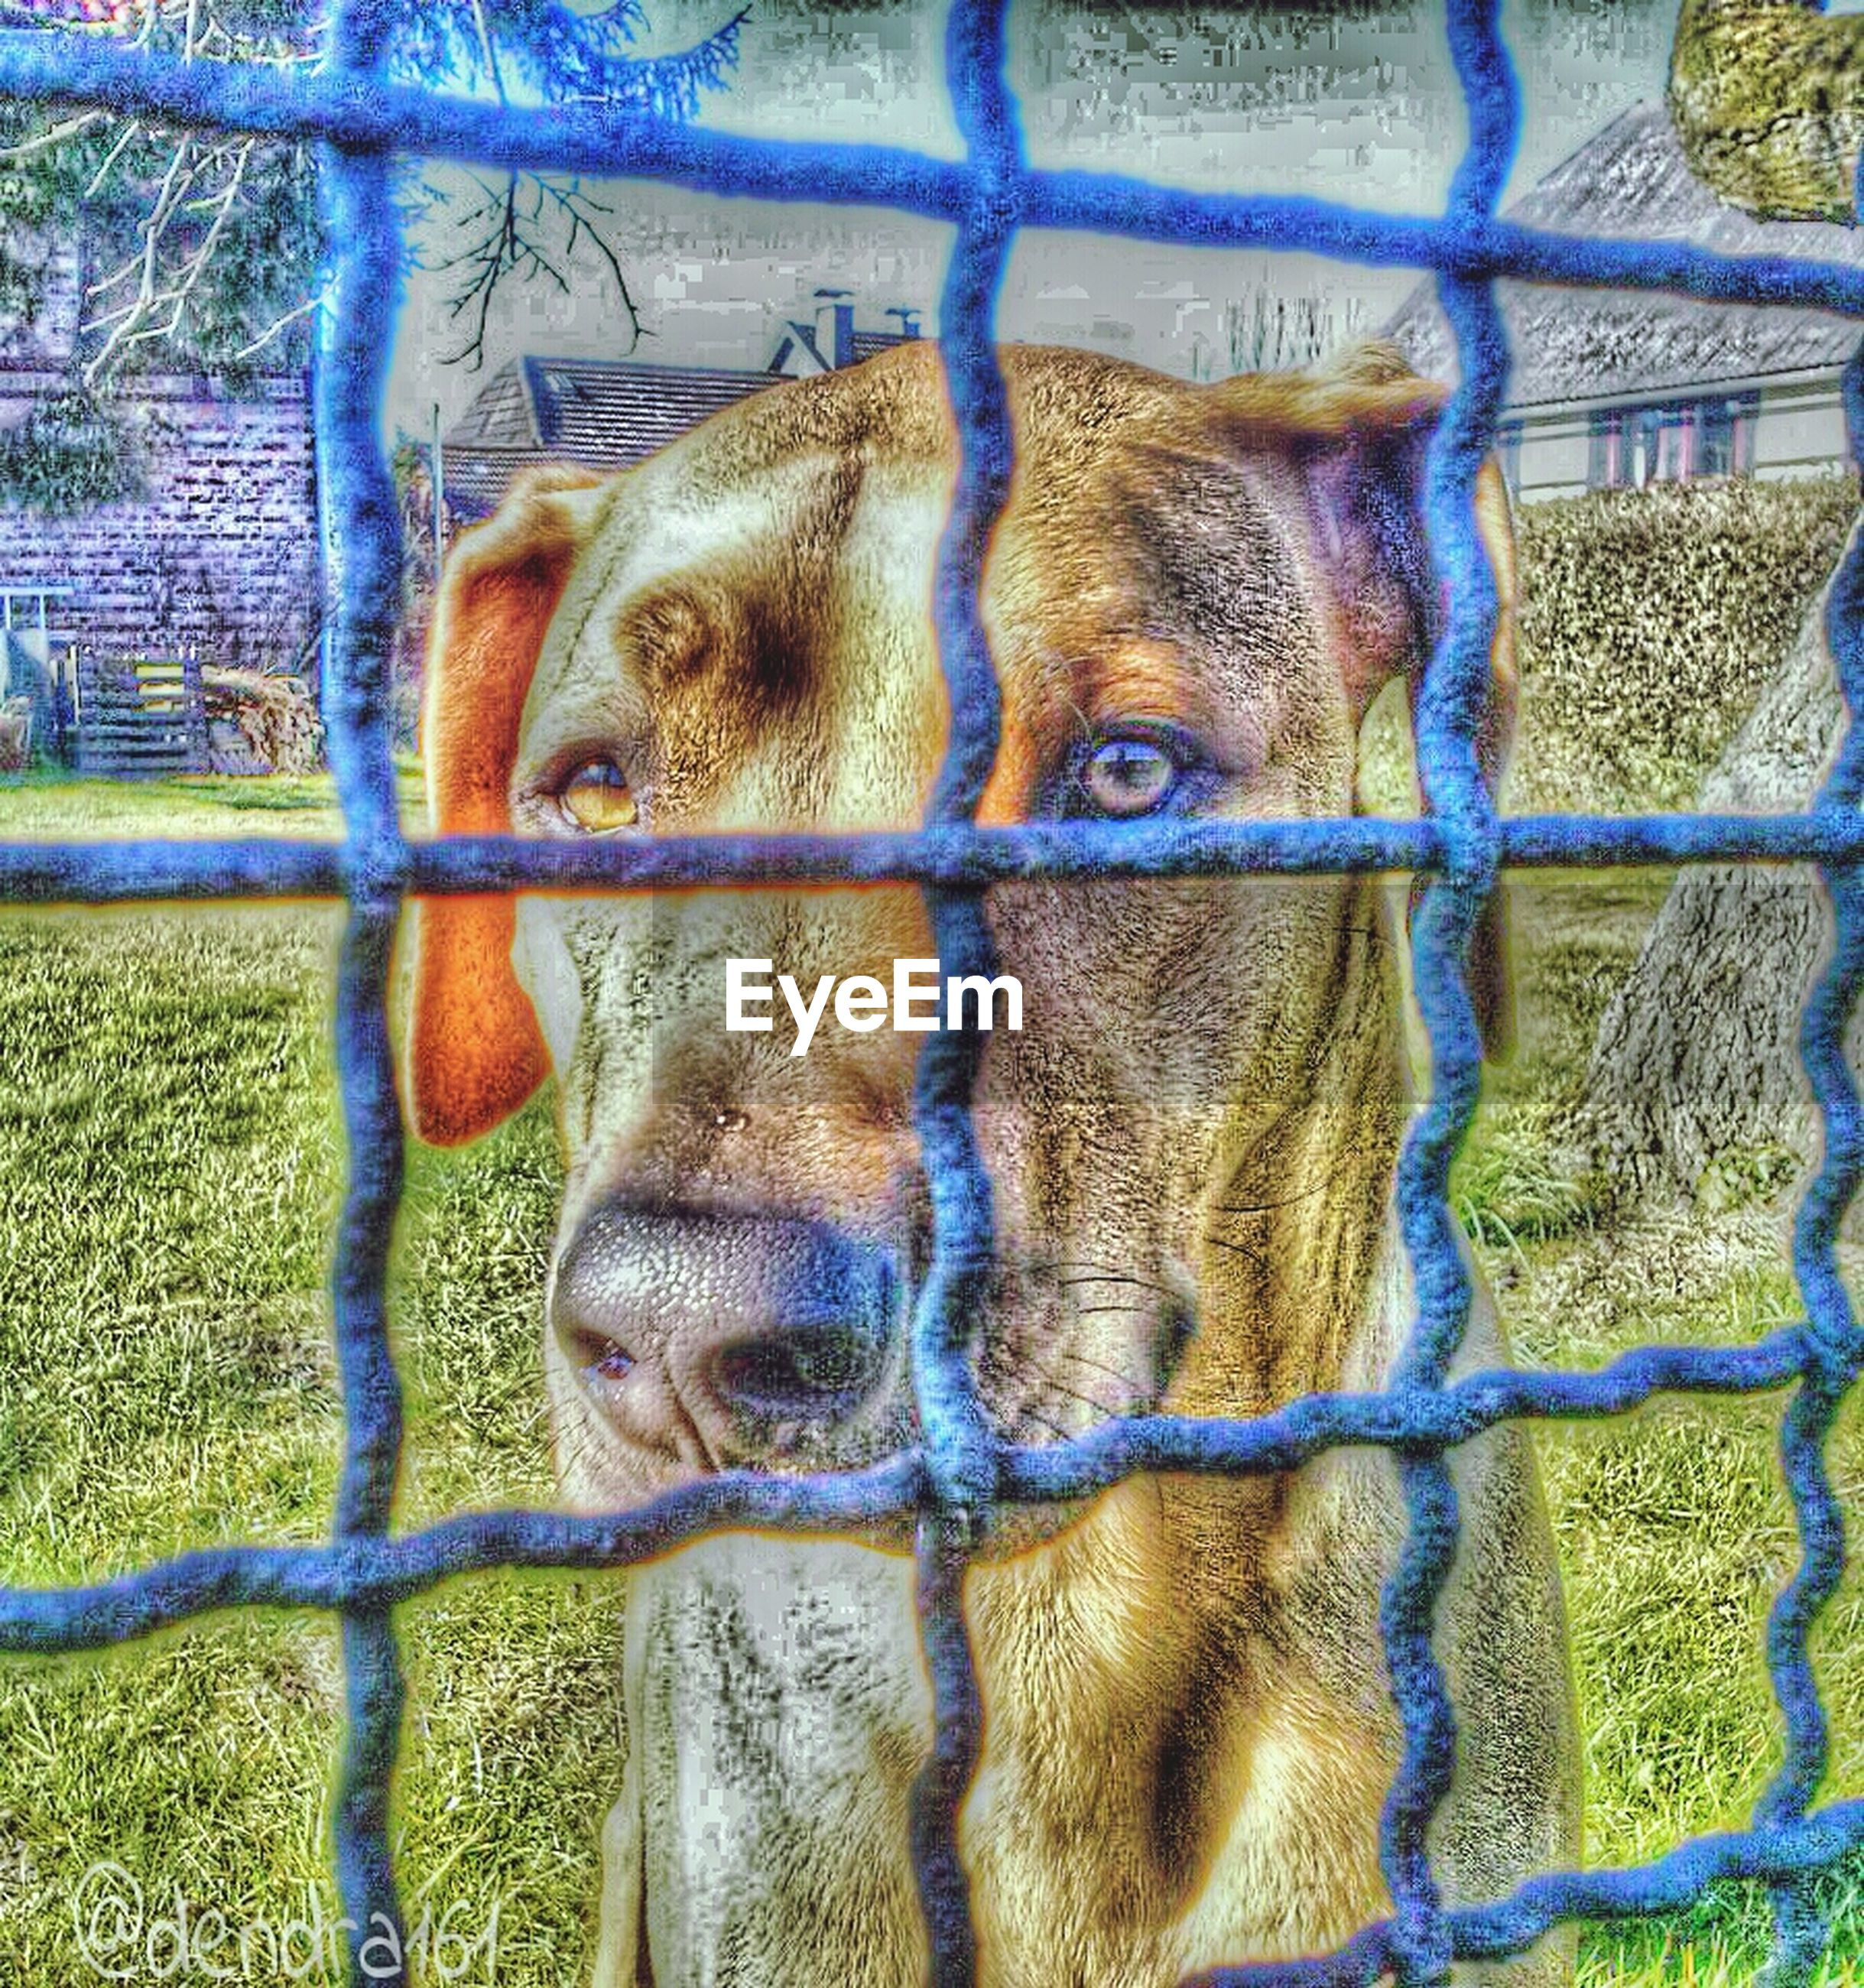 animal themes, one animal, mammal, fence, domestic animals, animals in captivity, cage, portrait, looking at camera, chainlink fence, wildlife, animal head, close-up, pets, animals in the wild, zoo, no people, day, zoology, full frame